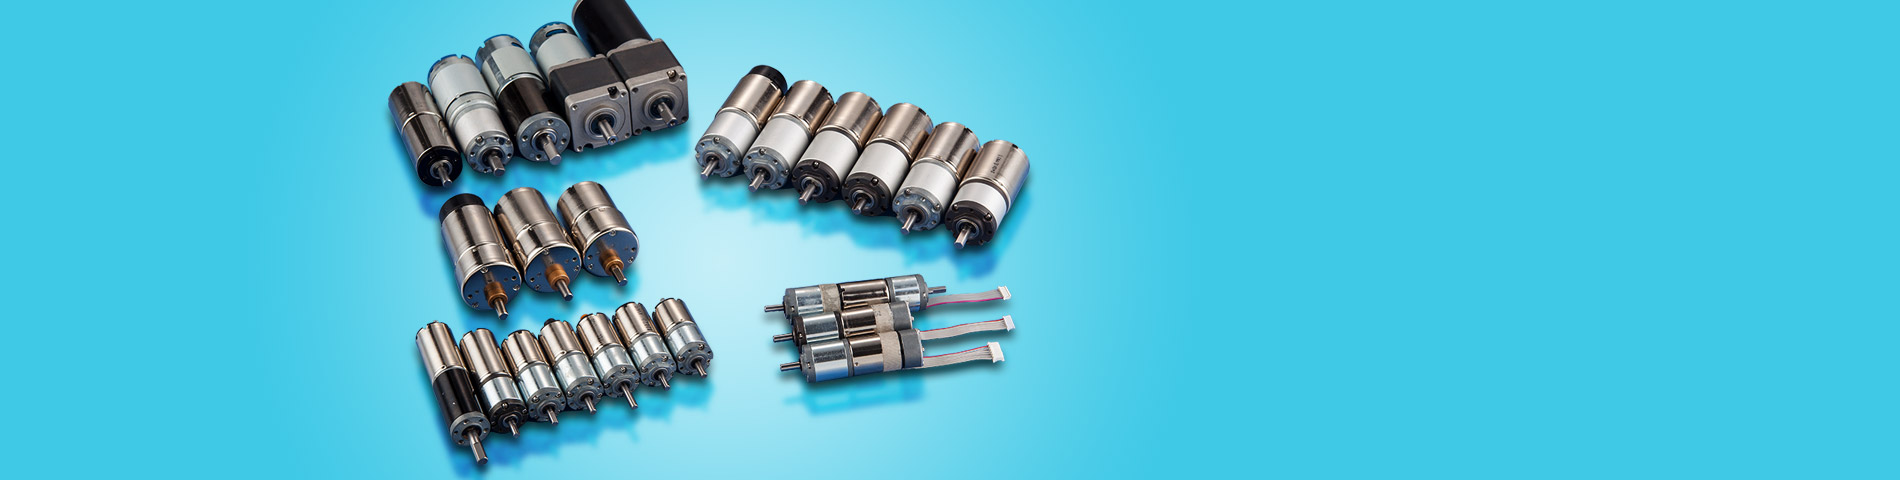 Develop & Manufacture  Miniature and Small DC Gear Motors